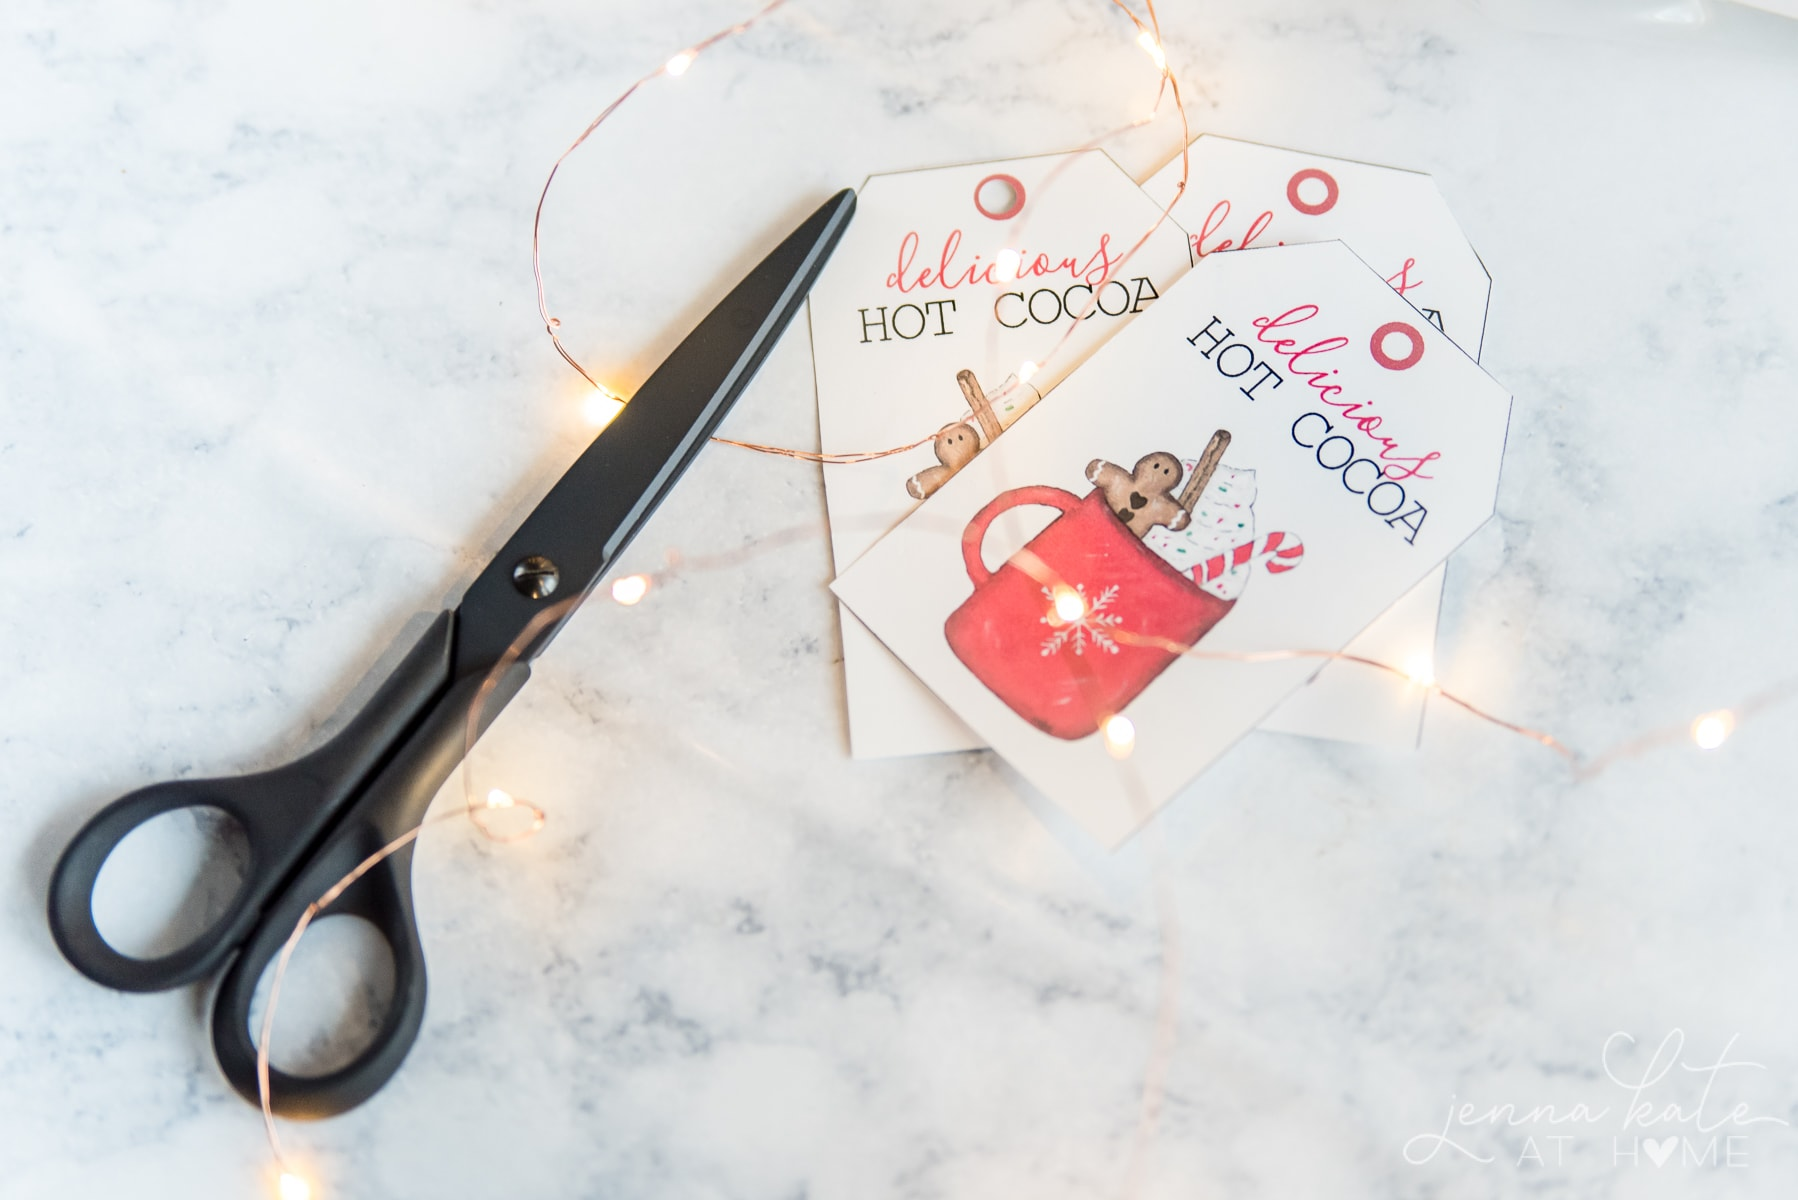 Printed gift tags cut out with a scissors